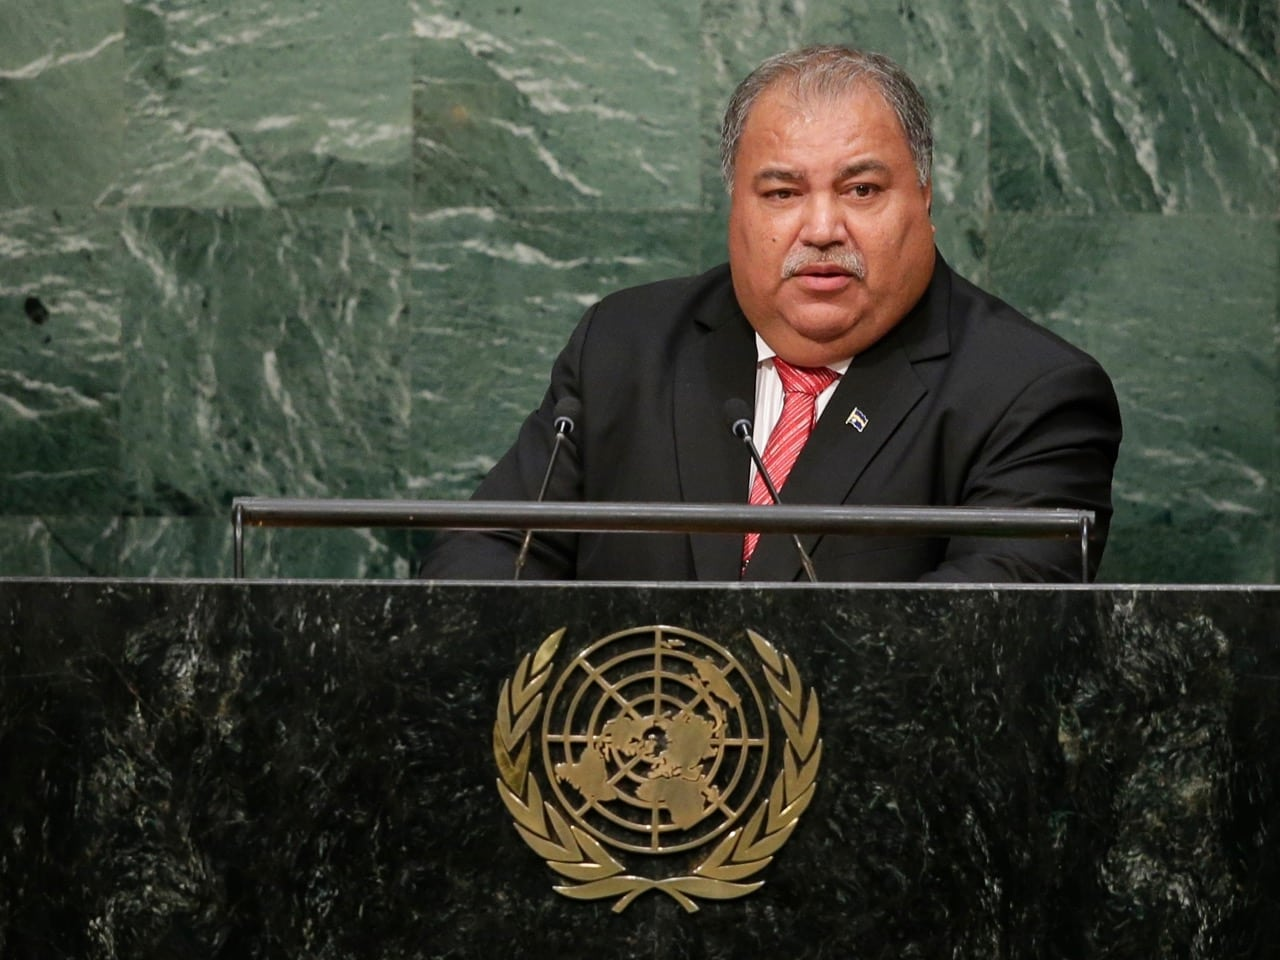 Baron Divavesi Waqa, President of Nauru, speaks during the 70th session of the United Nations General Assembly in New York, 30 September 2015, AP Photo/Frank Franklin II